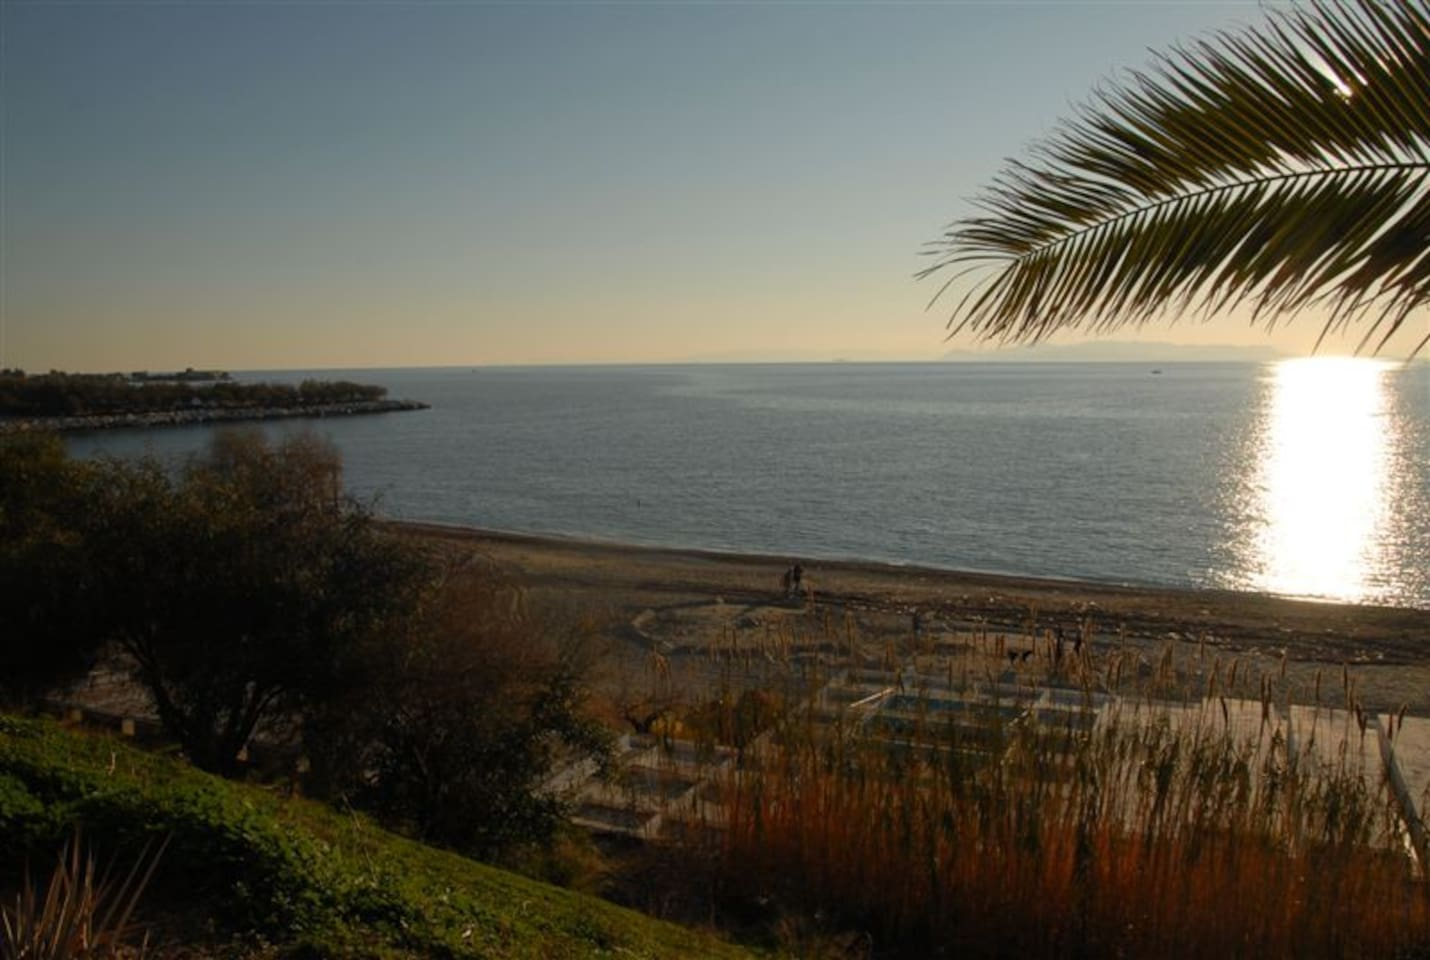 Exclusive use of the apartment with amazing view over Aegean sea. We communicate in 5 languages